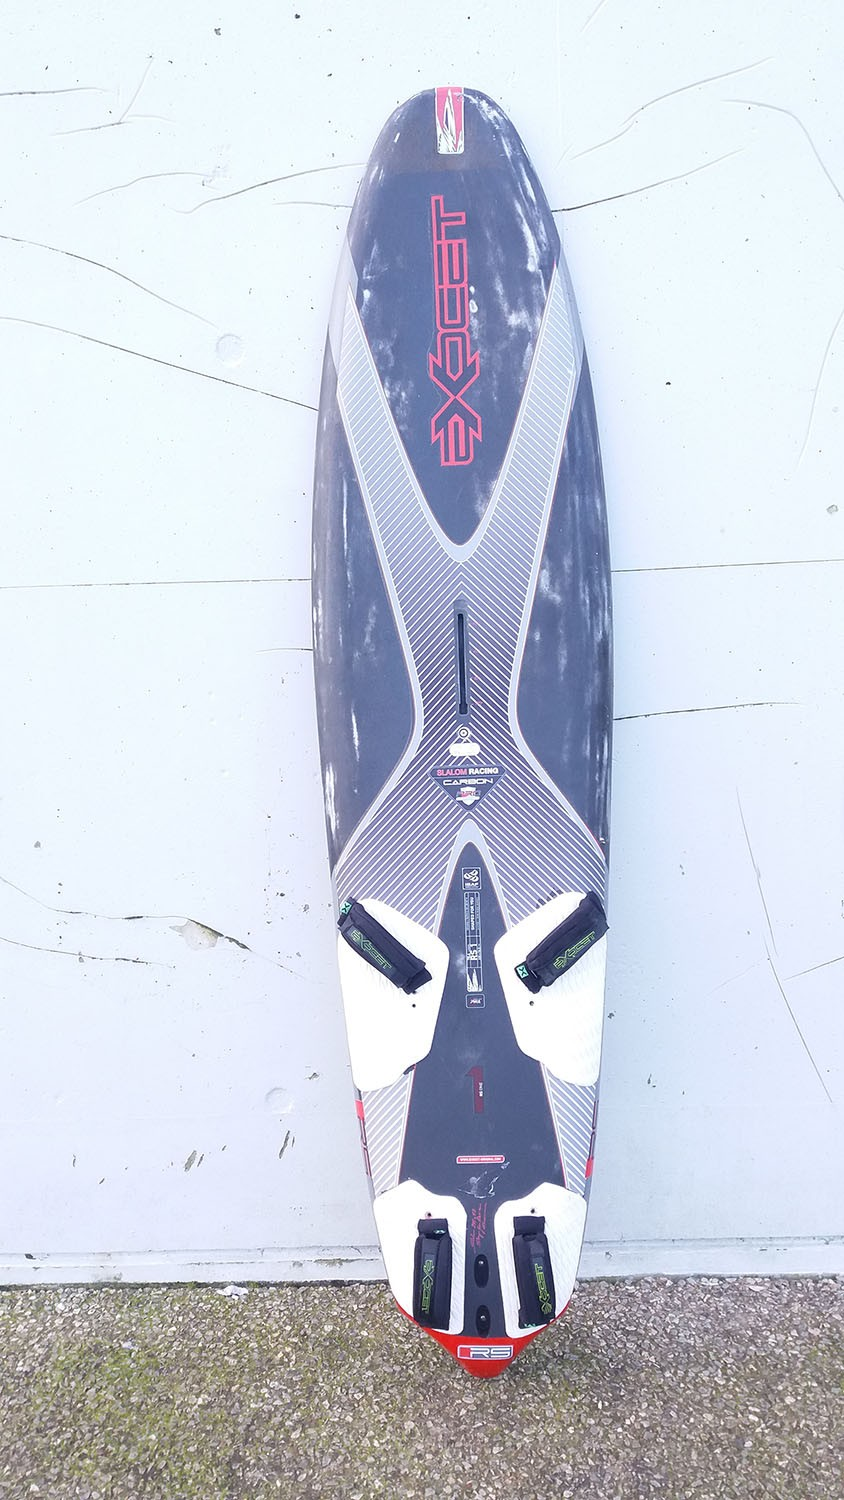 Planche Exocet RS Slalom RS1 80 L. 2016 PROTO occasion